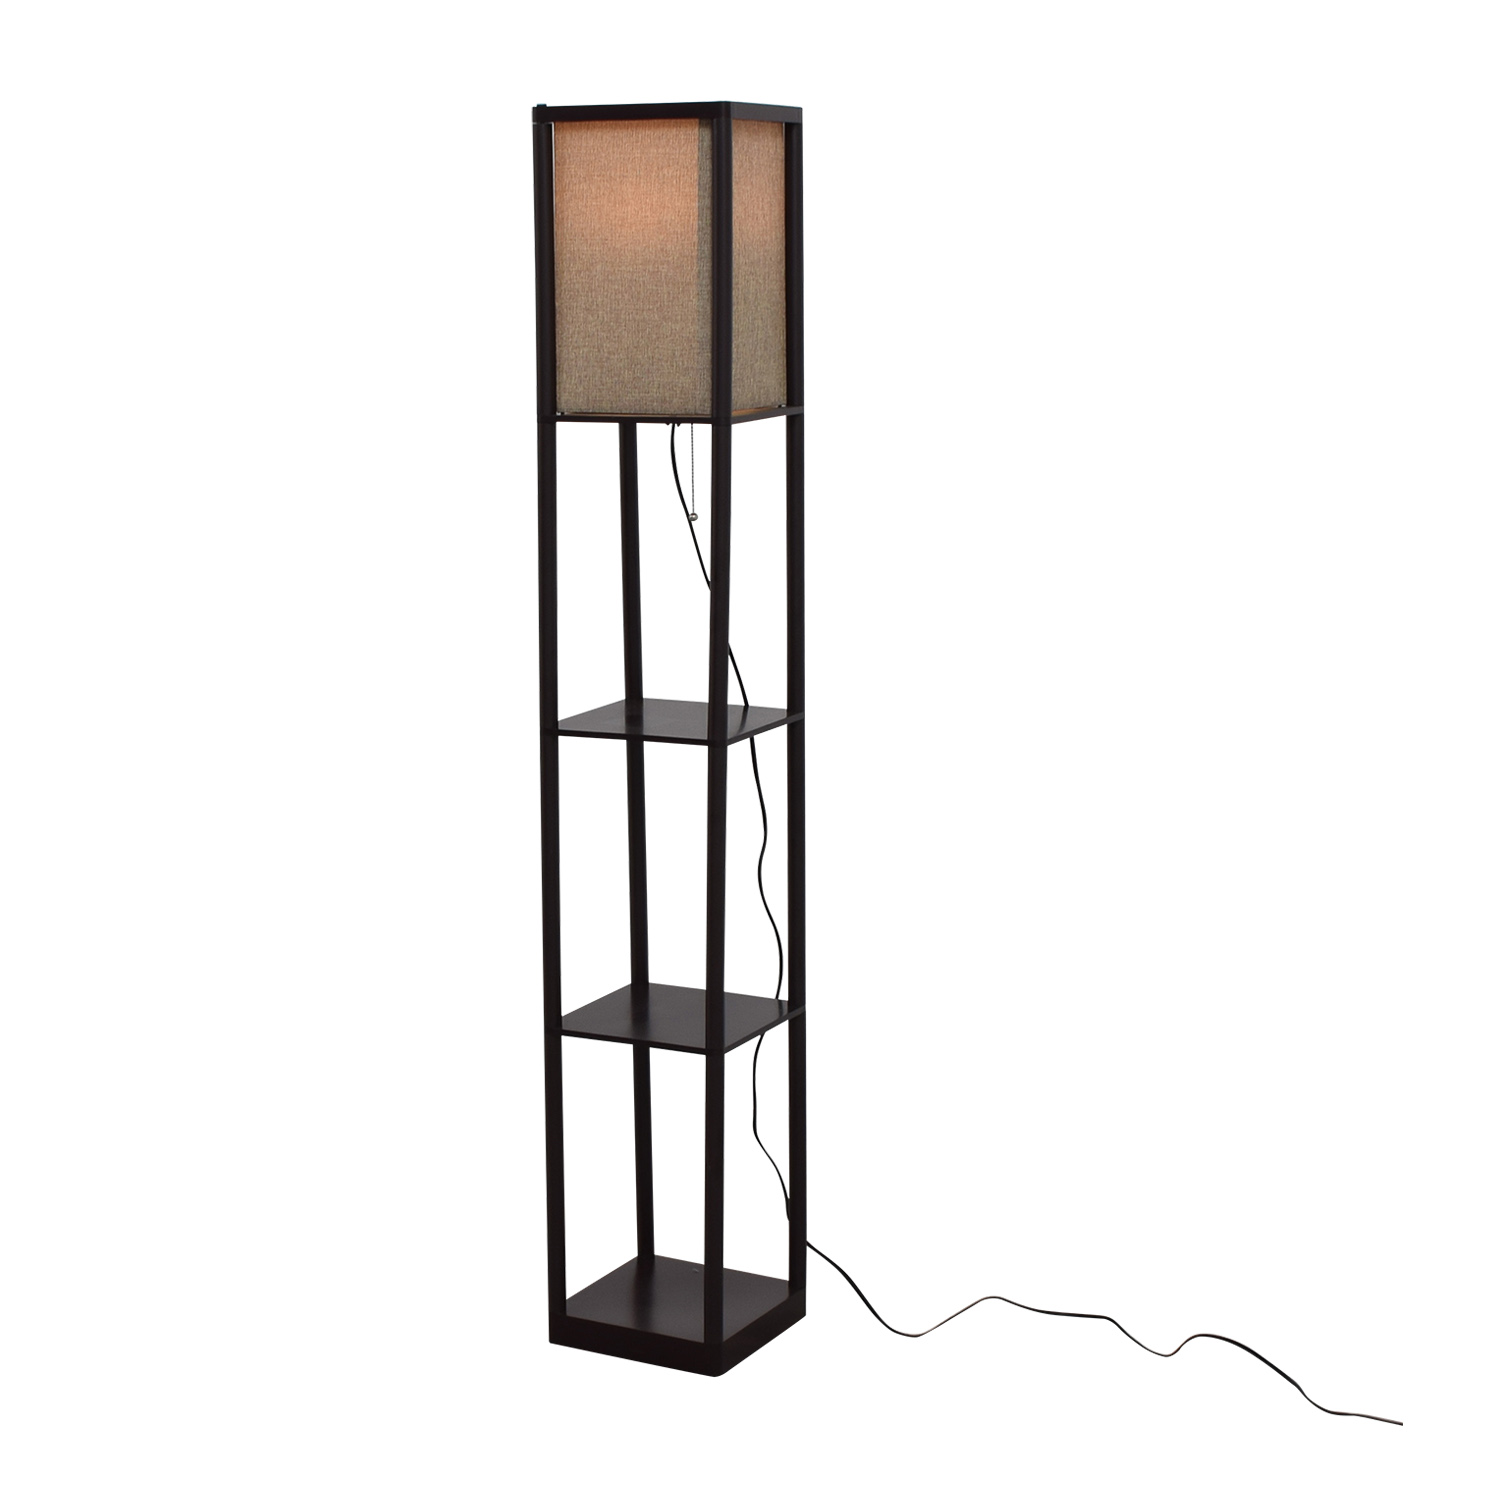 71 off walmart walmart tripod floor lamp with accordion shade decor. Black Bedroom Furniture Sets. Home Design Ideas